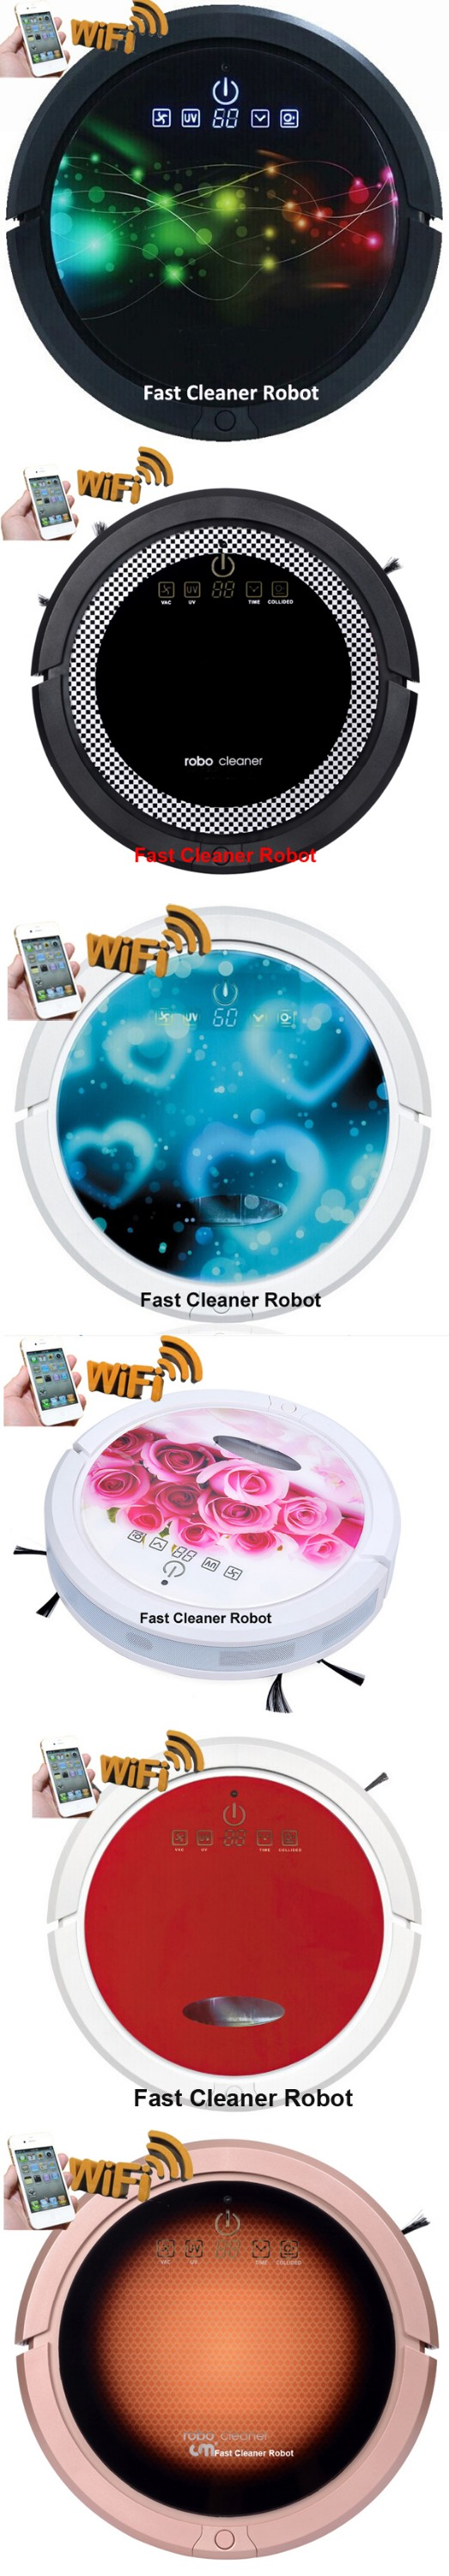 2018 Newest Smartphone WIFI APP Control Cordless Wet and Dry Vacuum Cleaner Robot With Water Tank